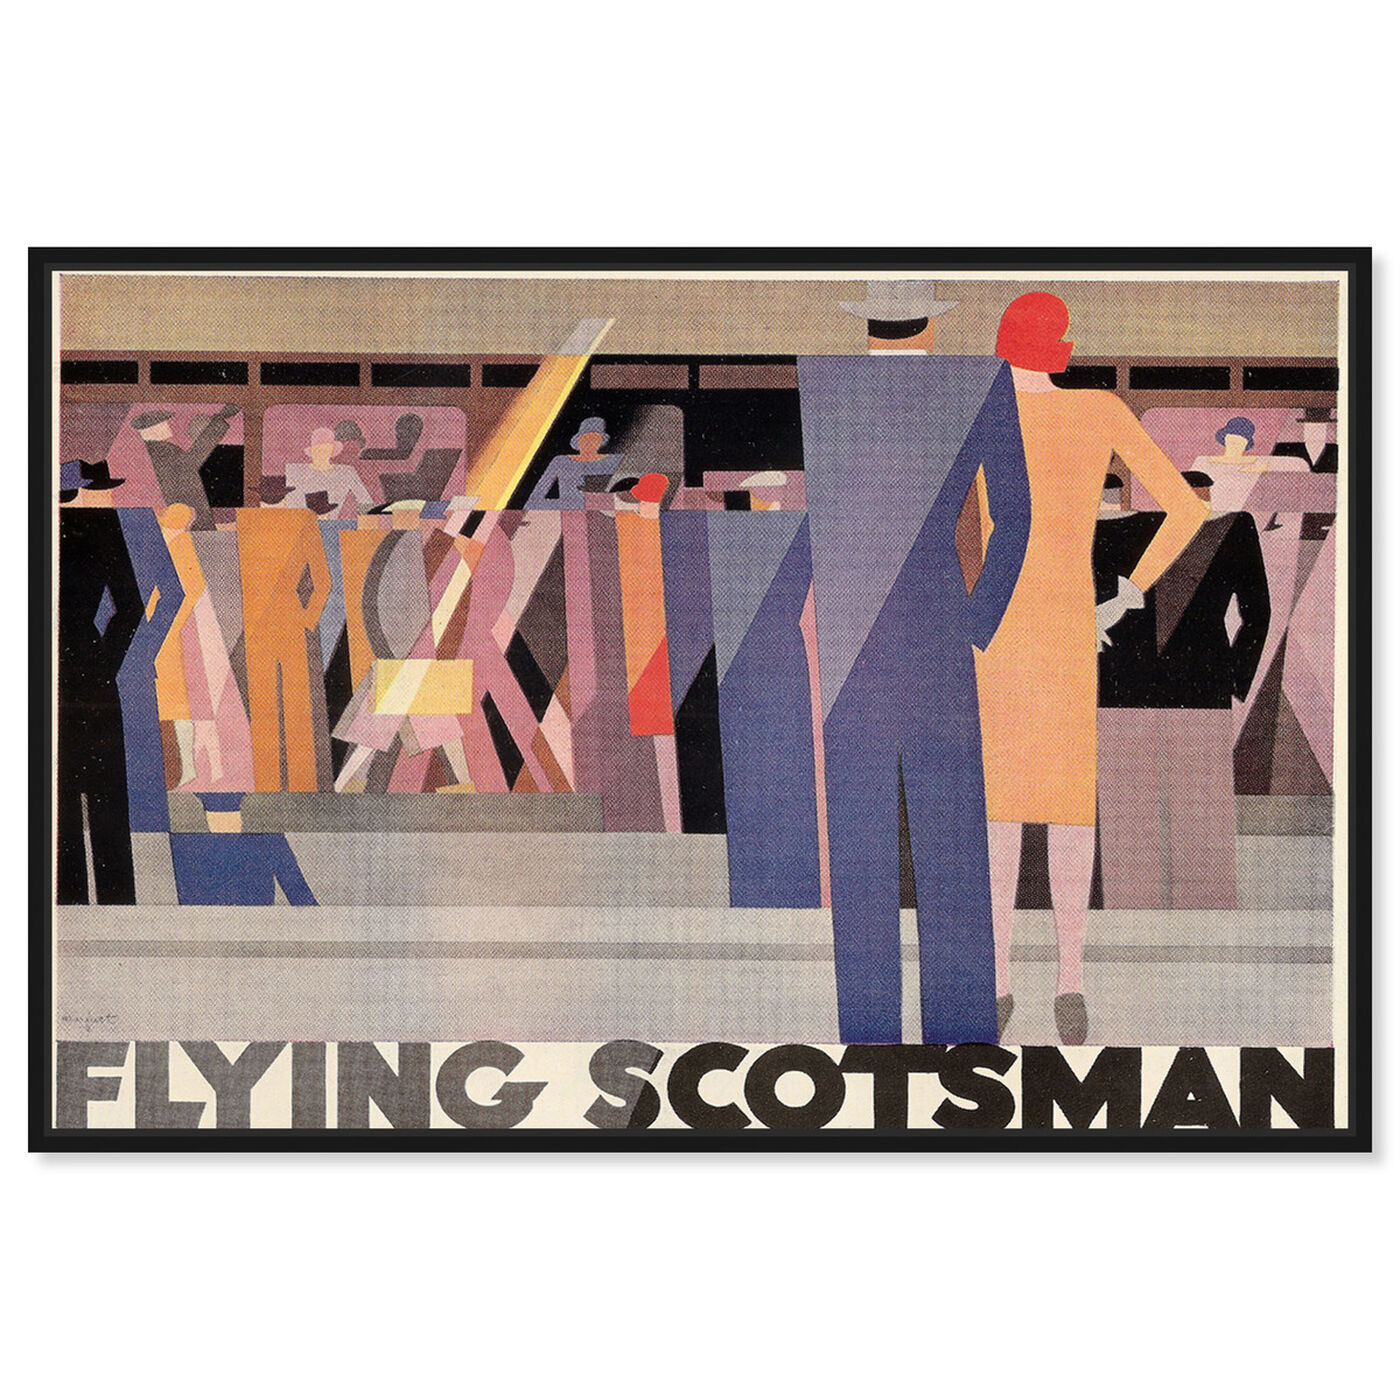 Front view of Flying Scotsman featuring advertising and posters art.